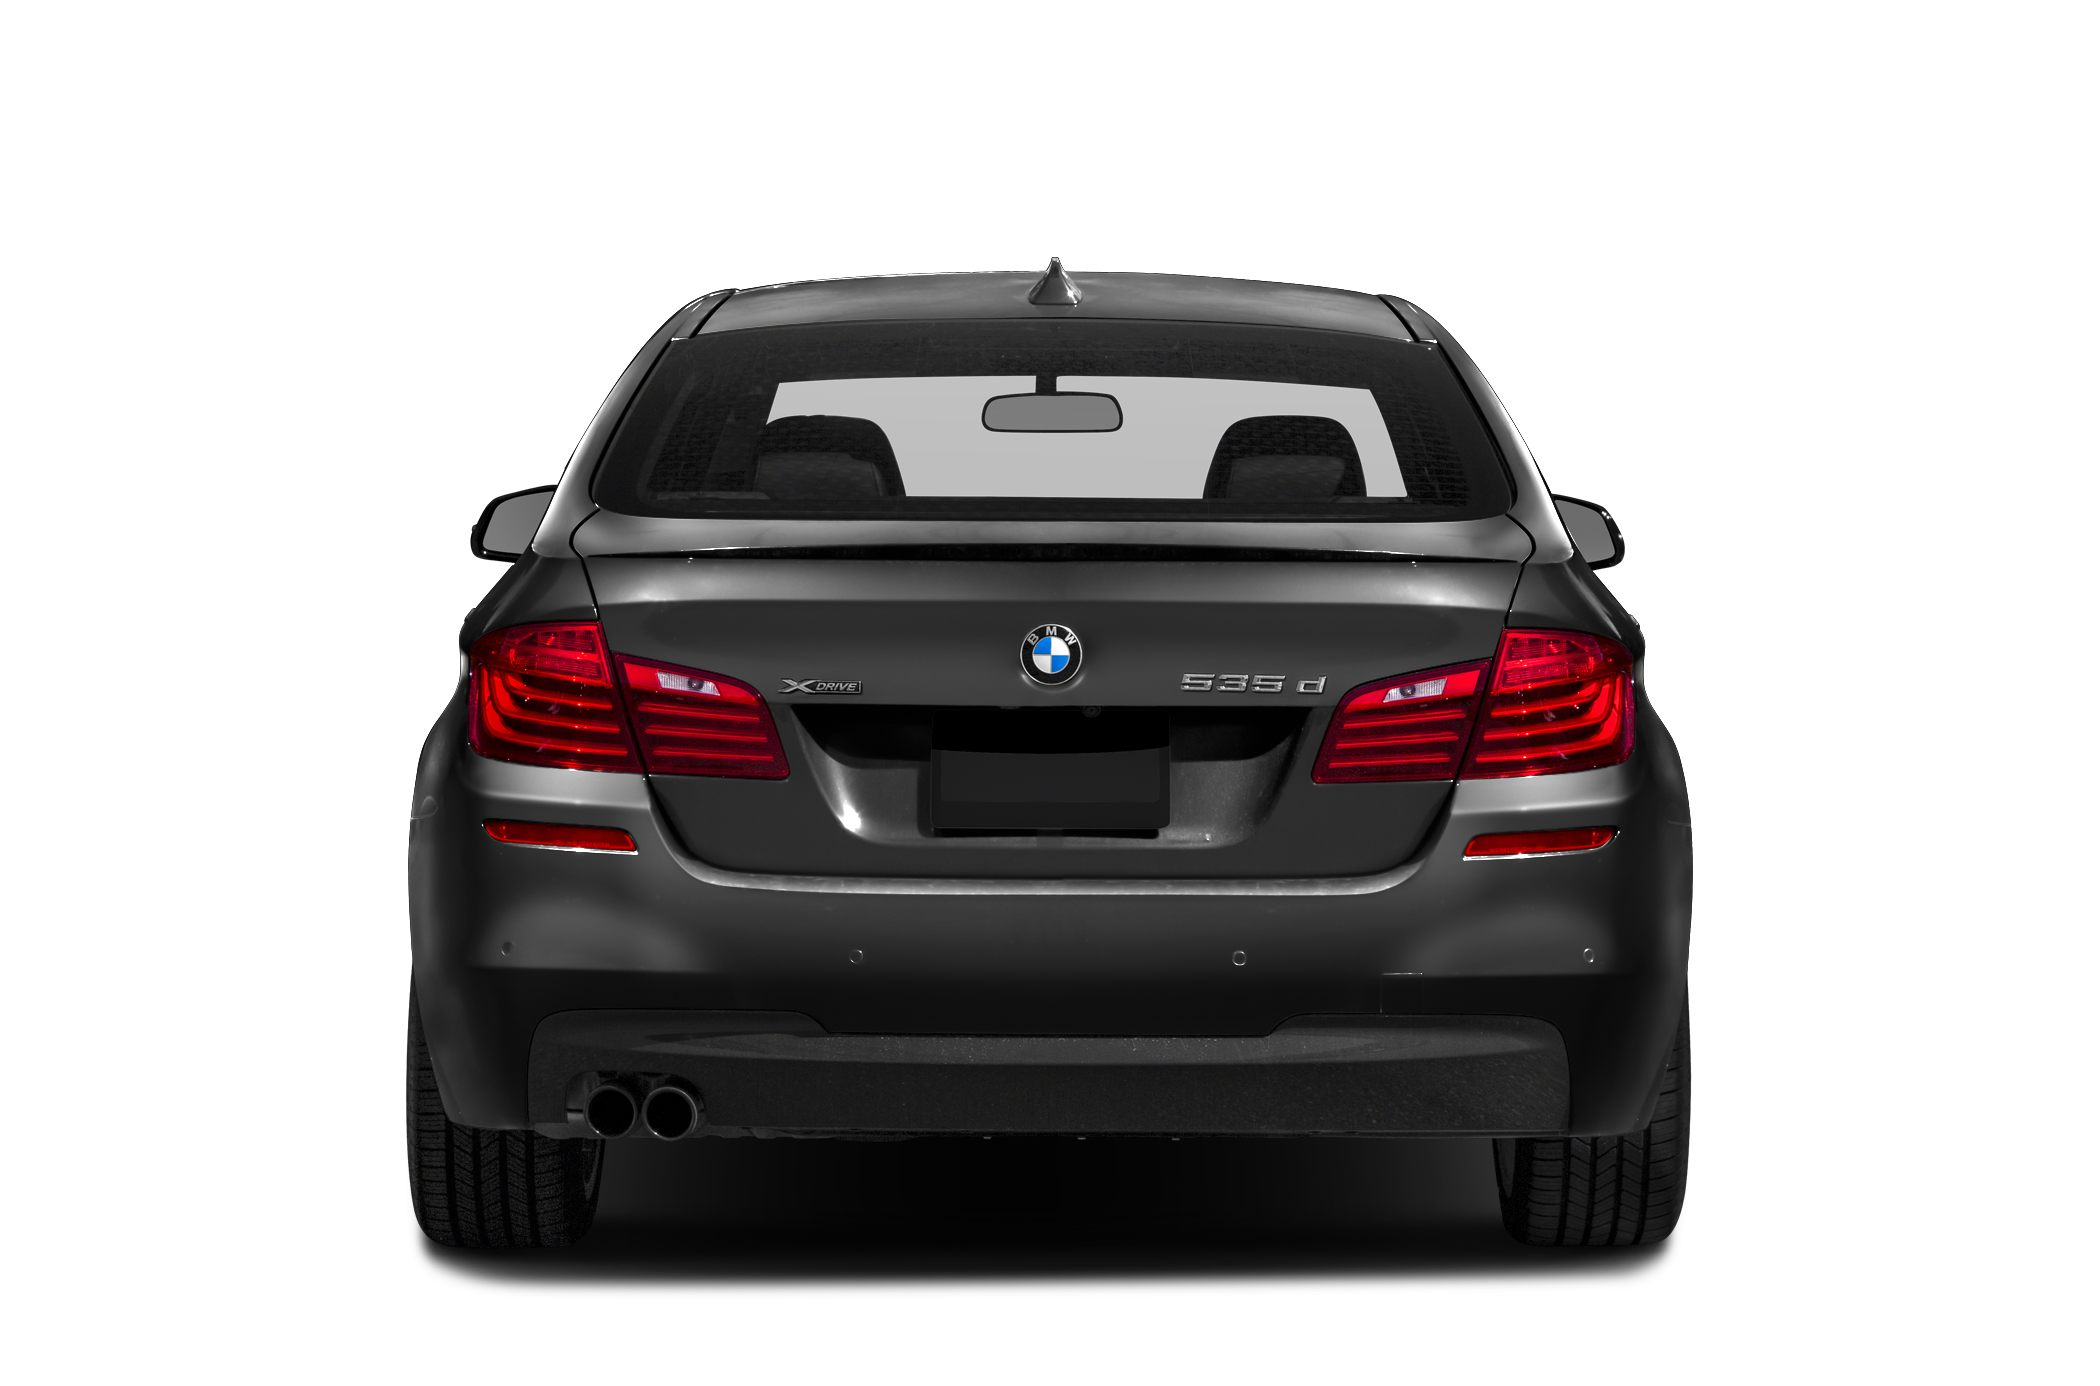 Bmw 535d Tires >> 2016 BMW 535d Pictures & Photos - CarsDirect